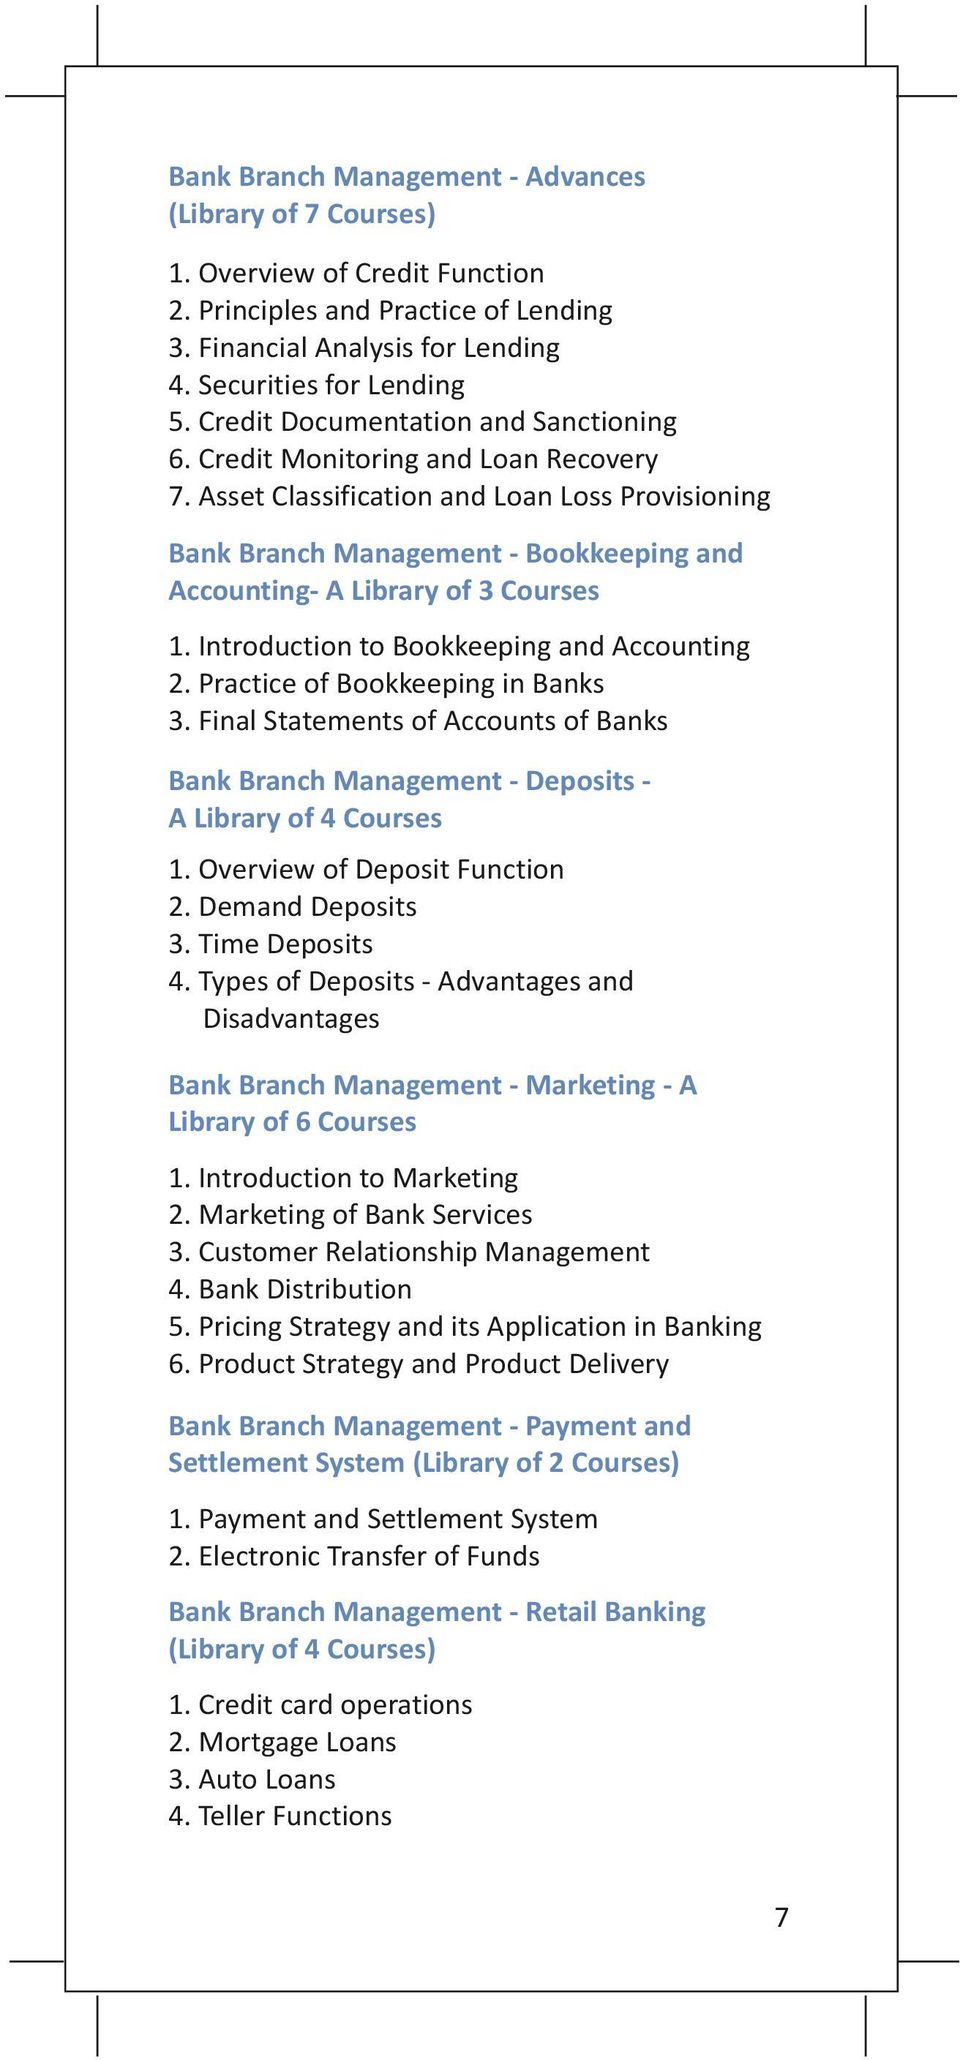 Asset Classification and Loan Loss Provisioning Bank Branch Management - Bookkeeping and Accounting- A Library of 3 Courses 1. Introduction to Bookkeeping and Accounting 2.